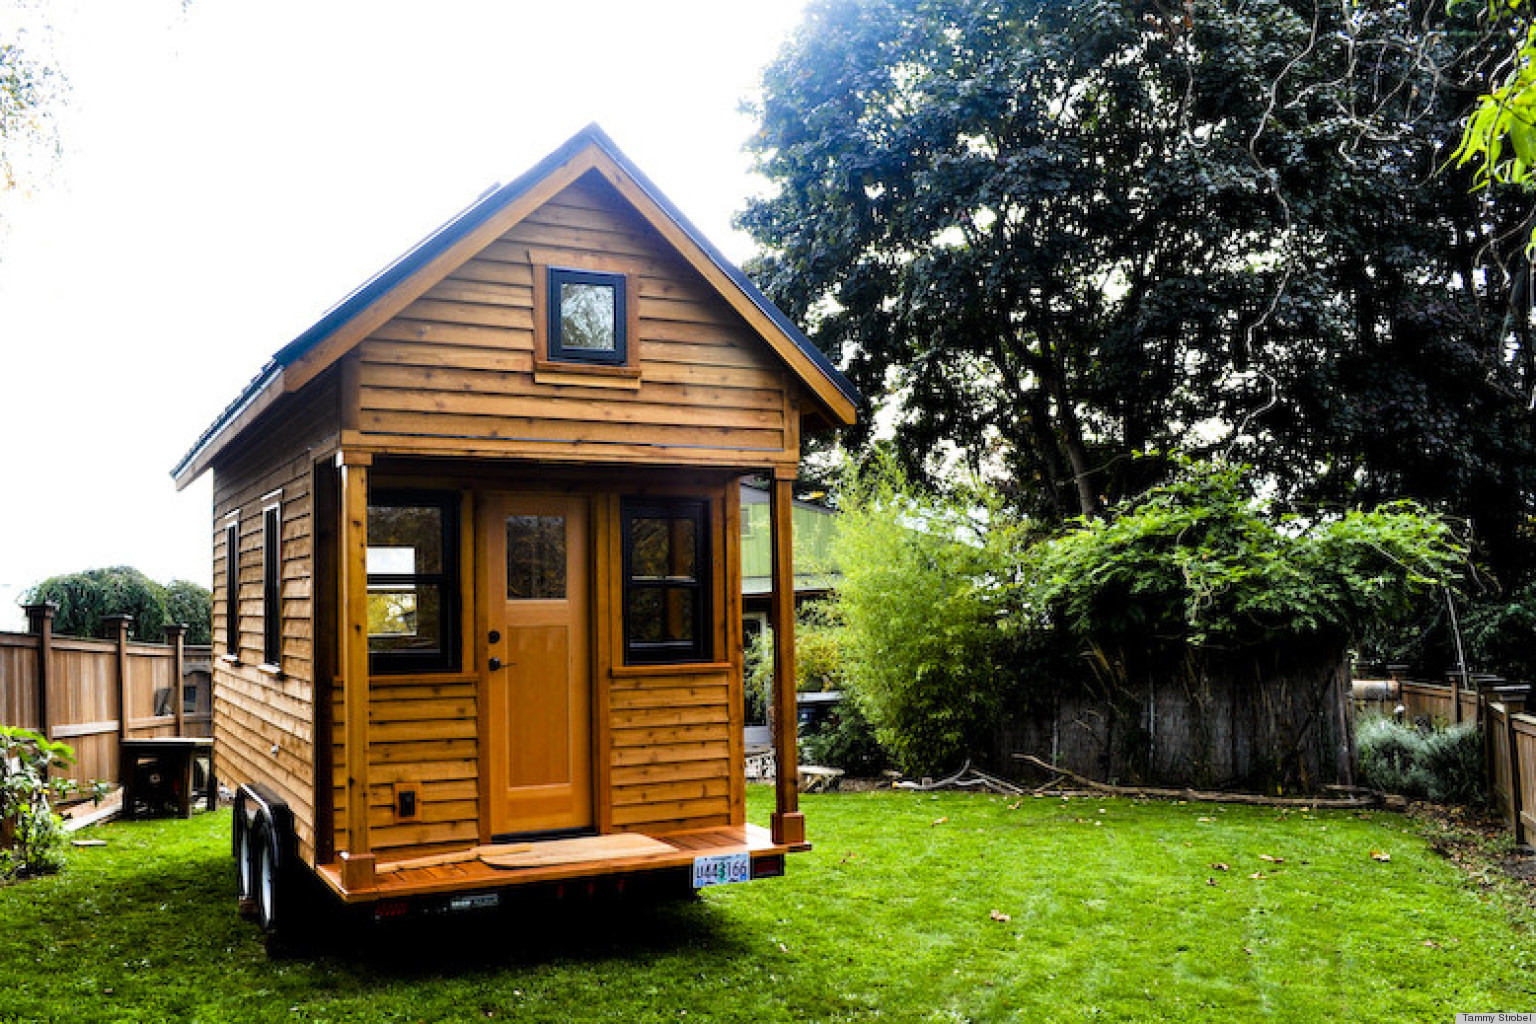 Miraculous House Tour Author And Blogger Tammy Strobel Shares Her Tiny Home Largest Home Design Picture Inspirations Pitcheantrous